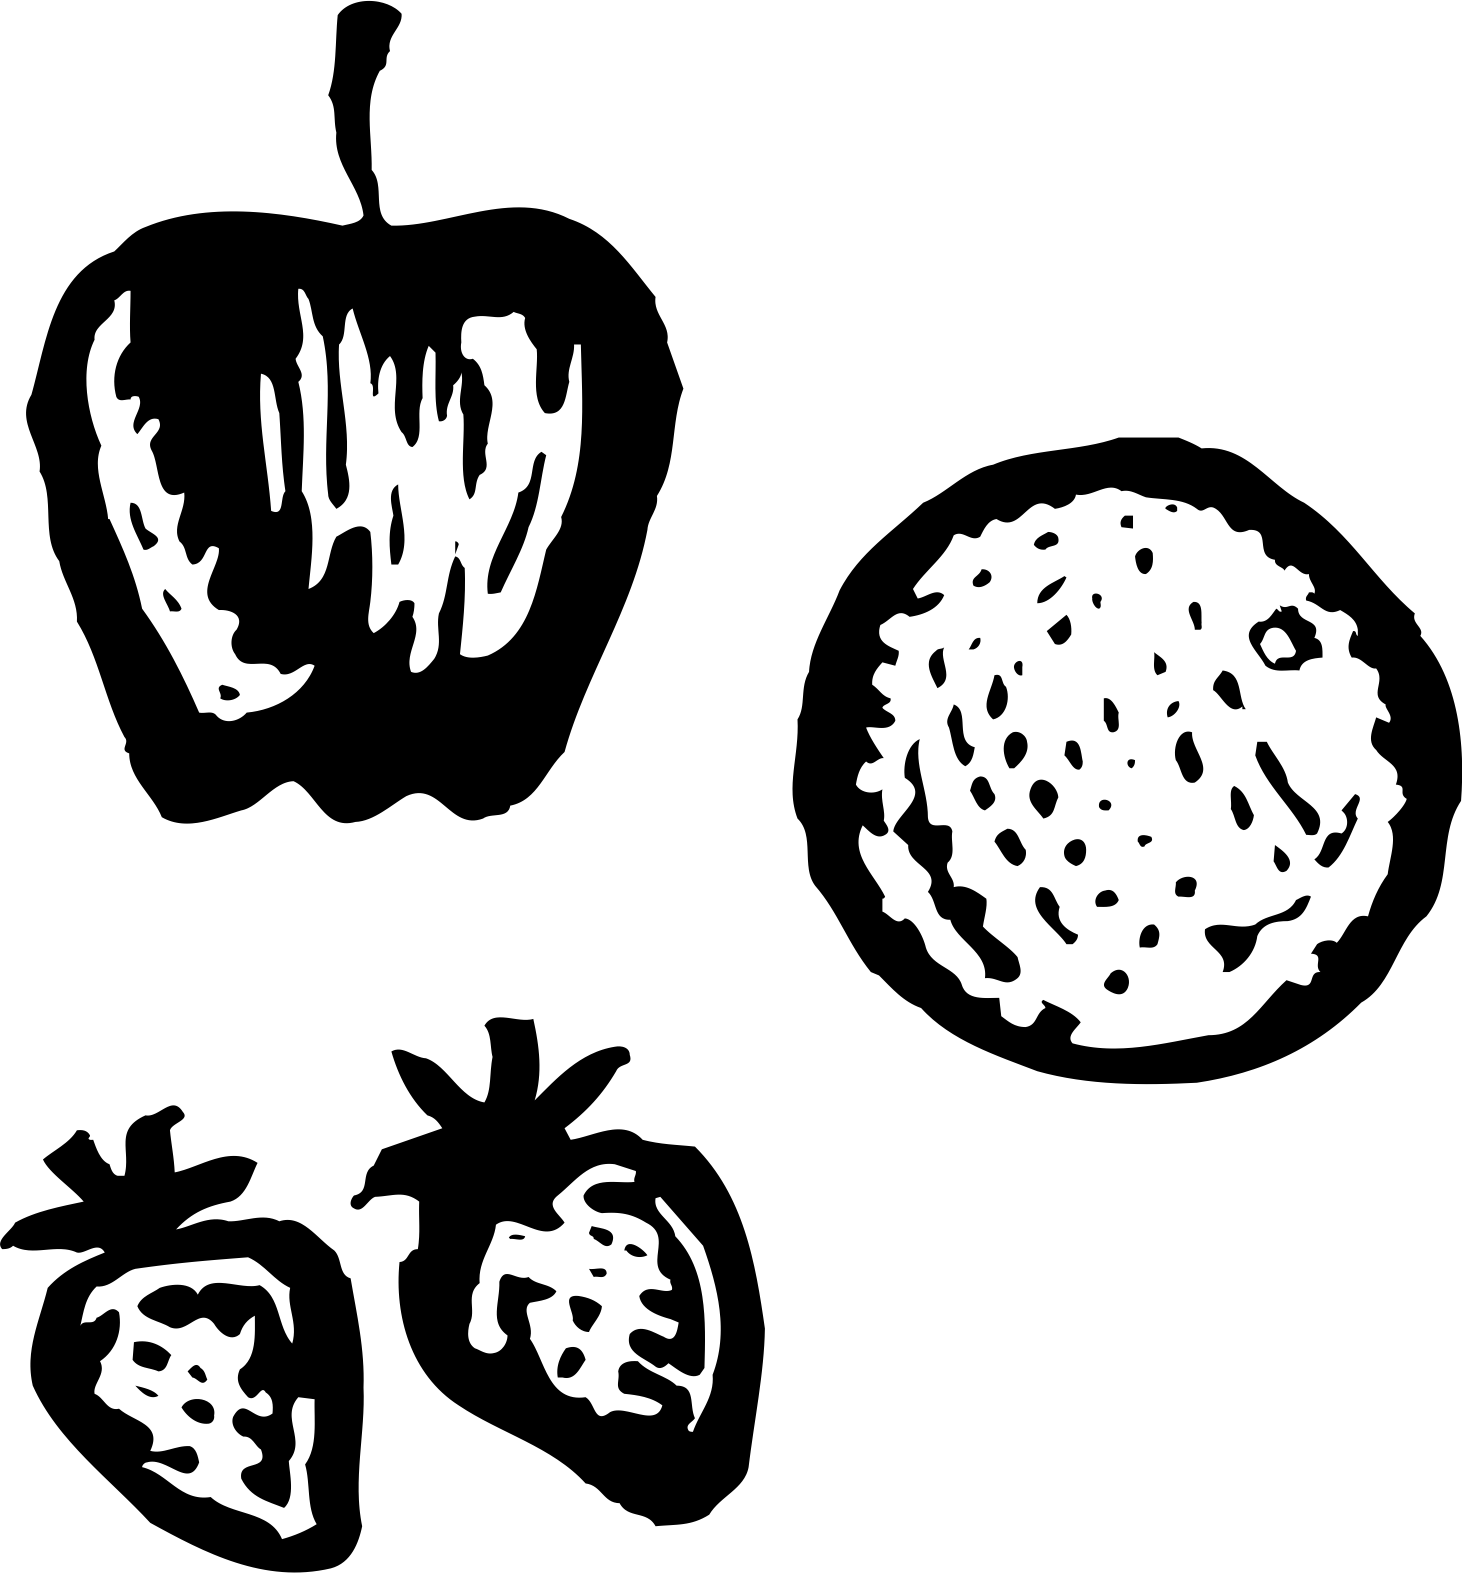 """""""Use your imagination and pick your favorite fruit, like oranges, apples or grapes …"""